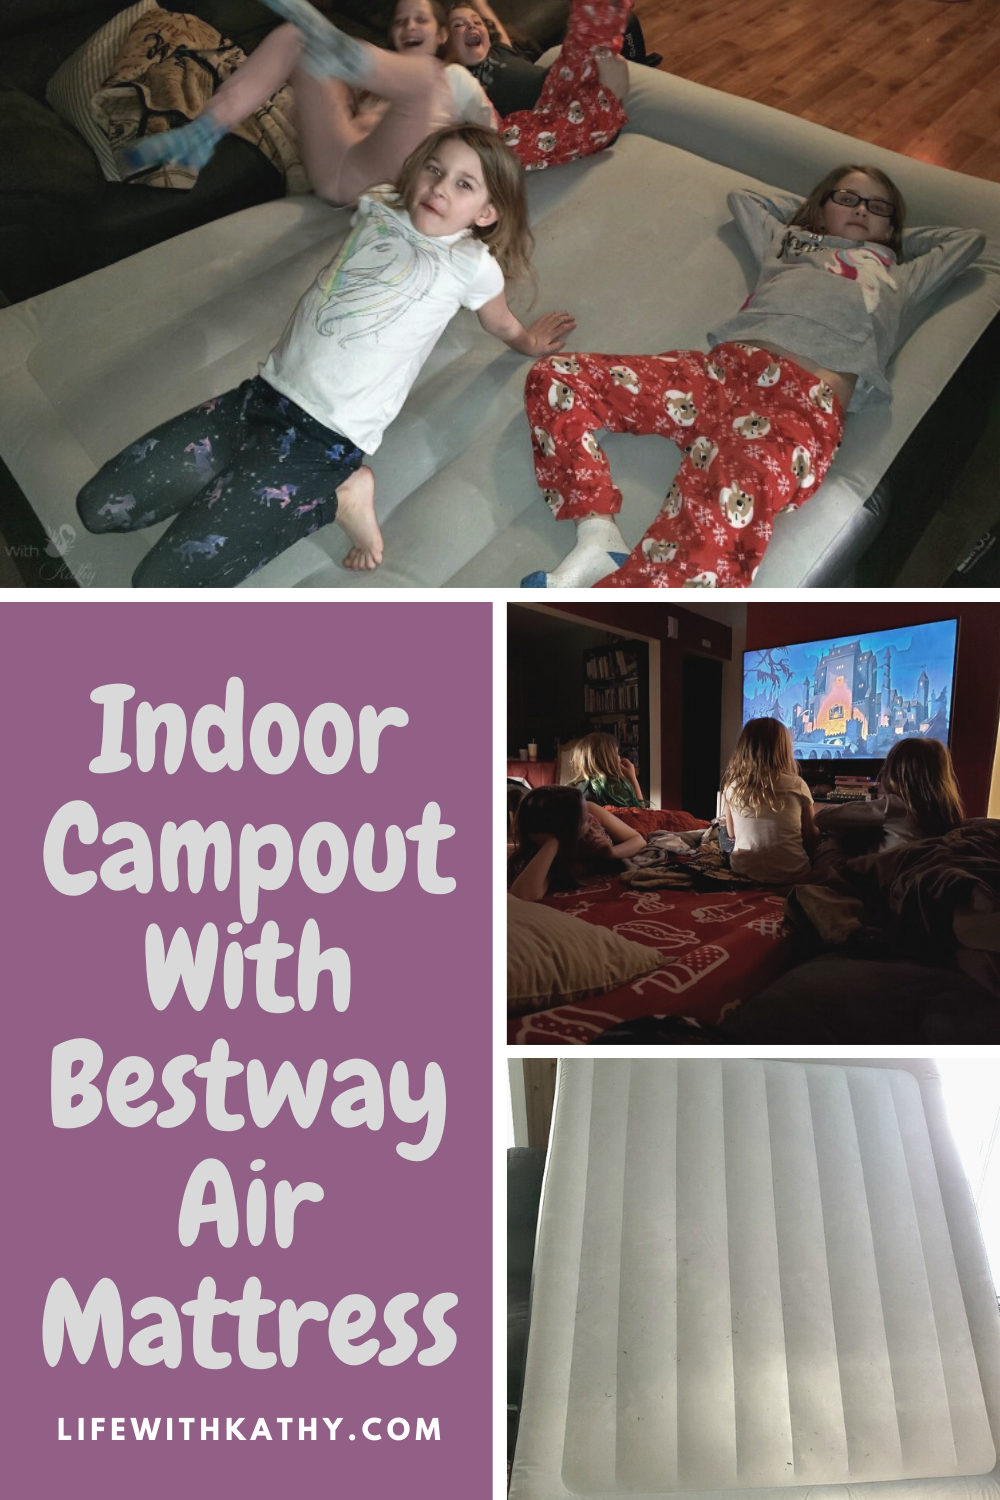 Indoor Campout With Bestway Air Mattress Life With Kathy